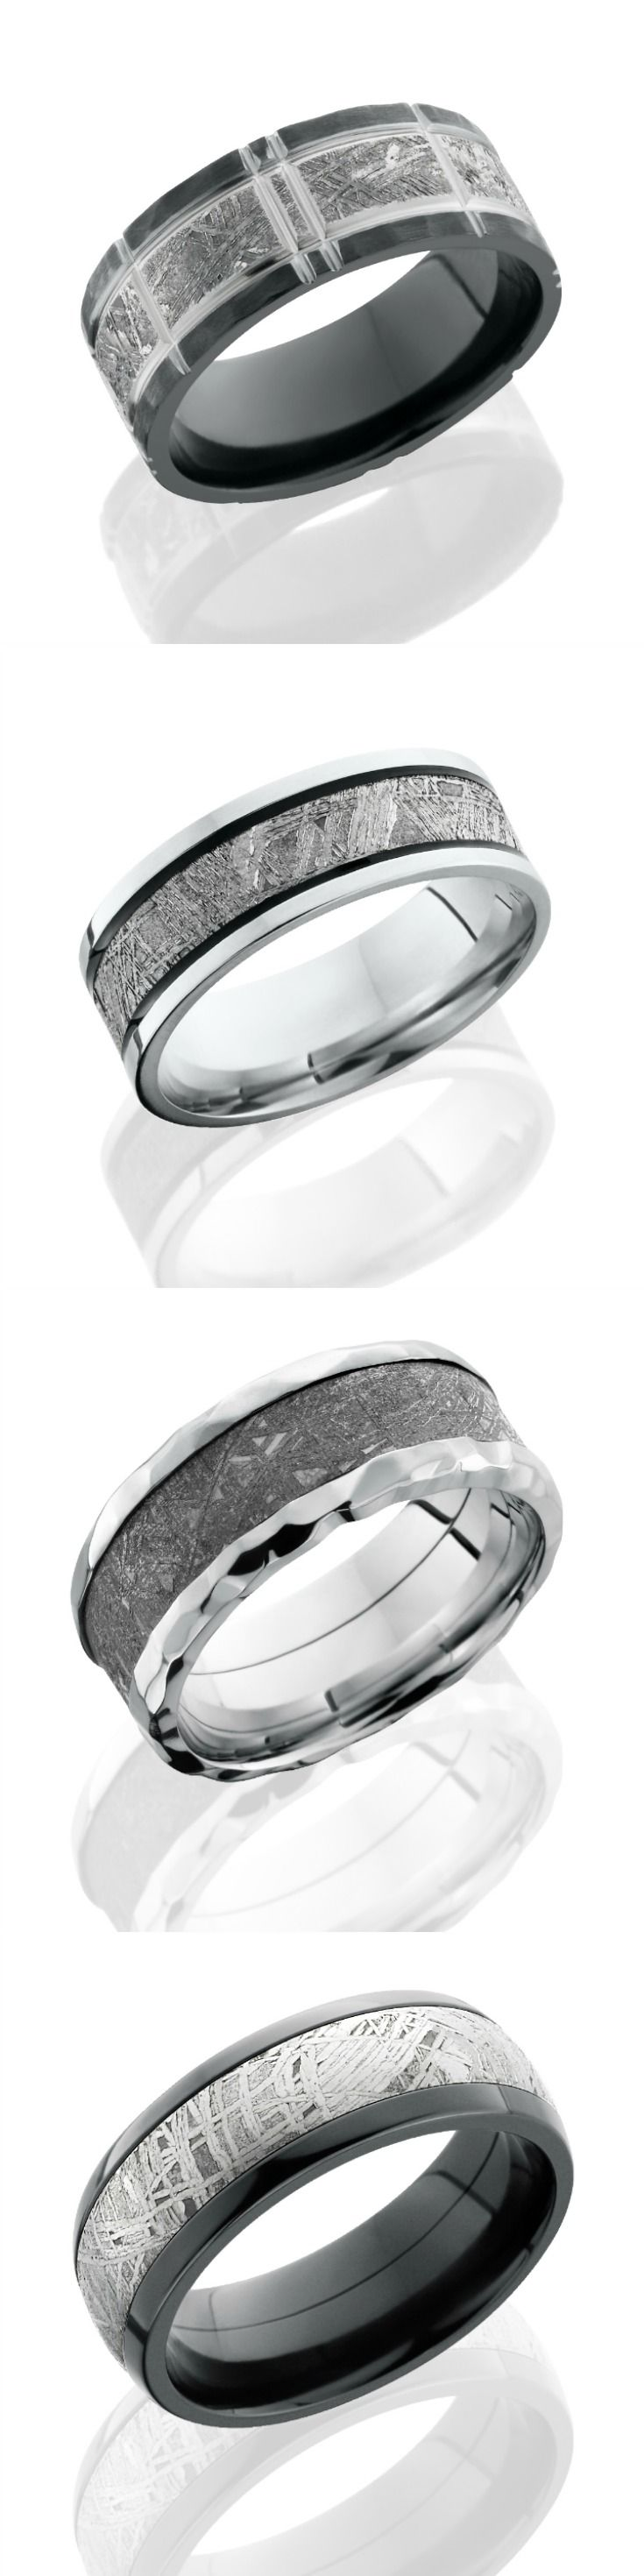 33 best Wedding Bands images on Pinterest